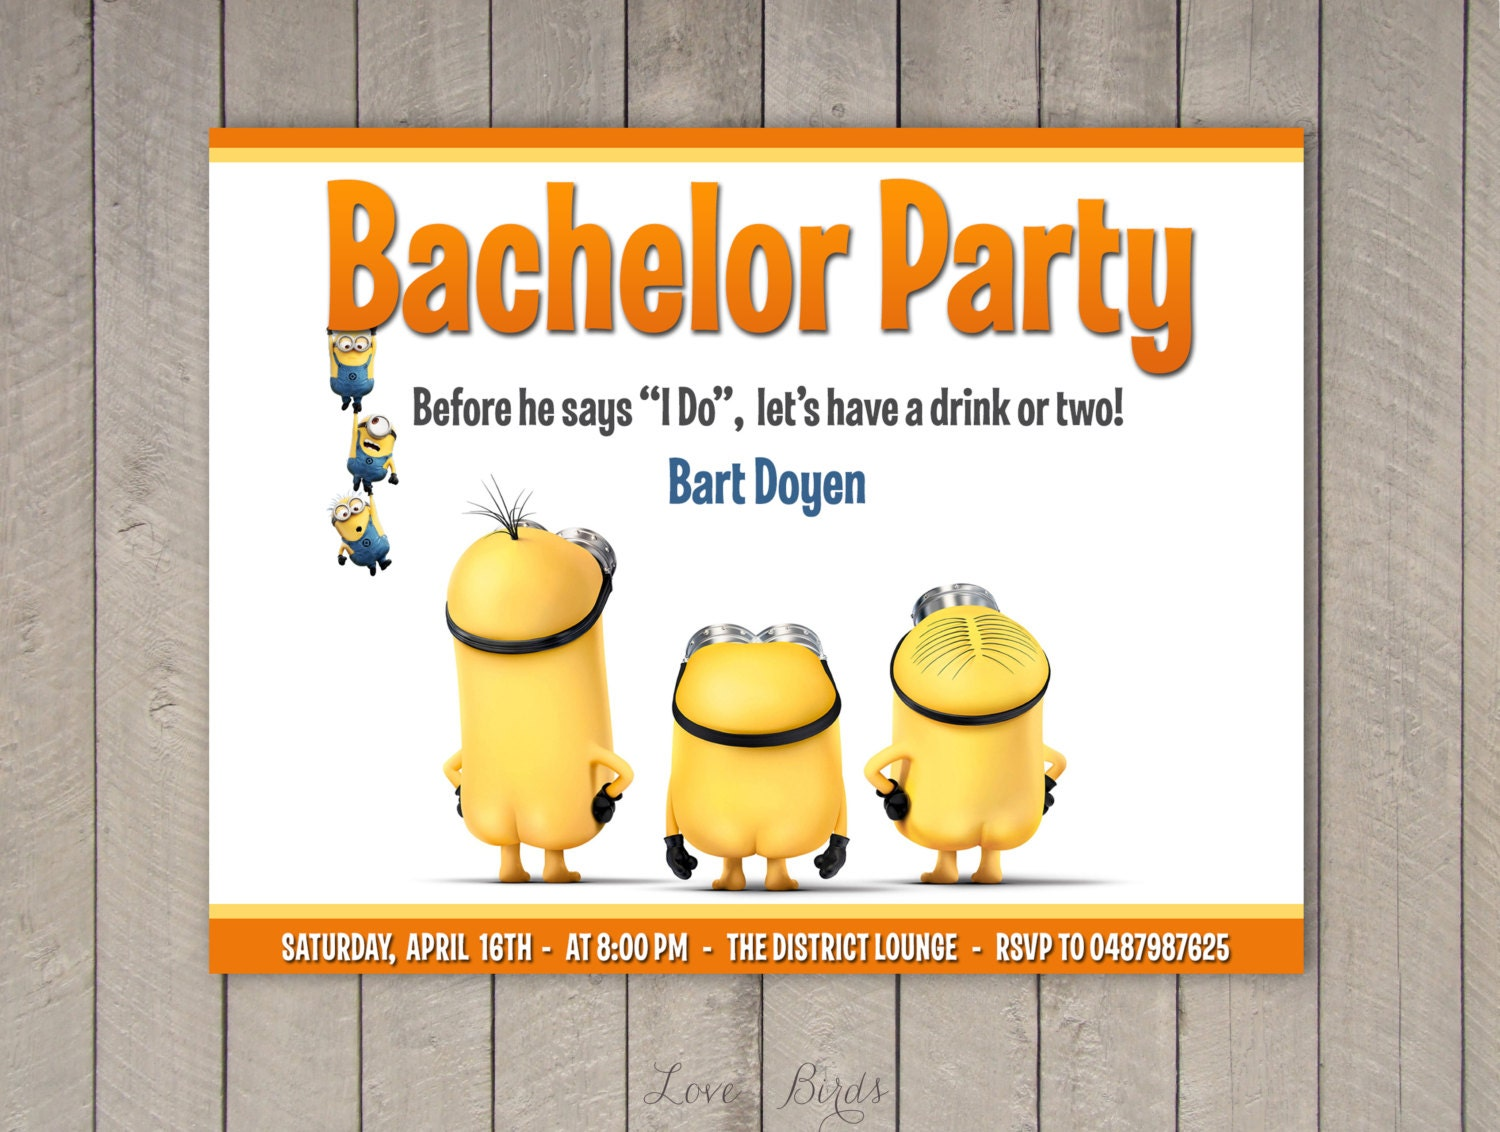 Bachelor Party Invitation Quotes is beautiful invitations design